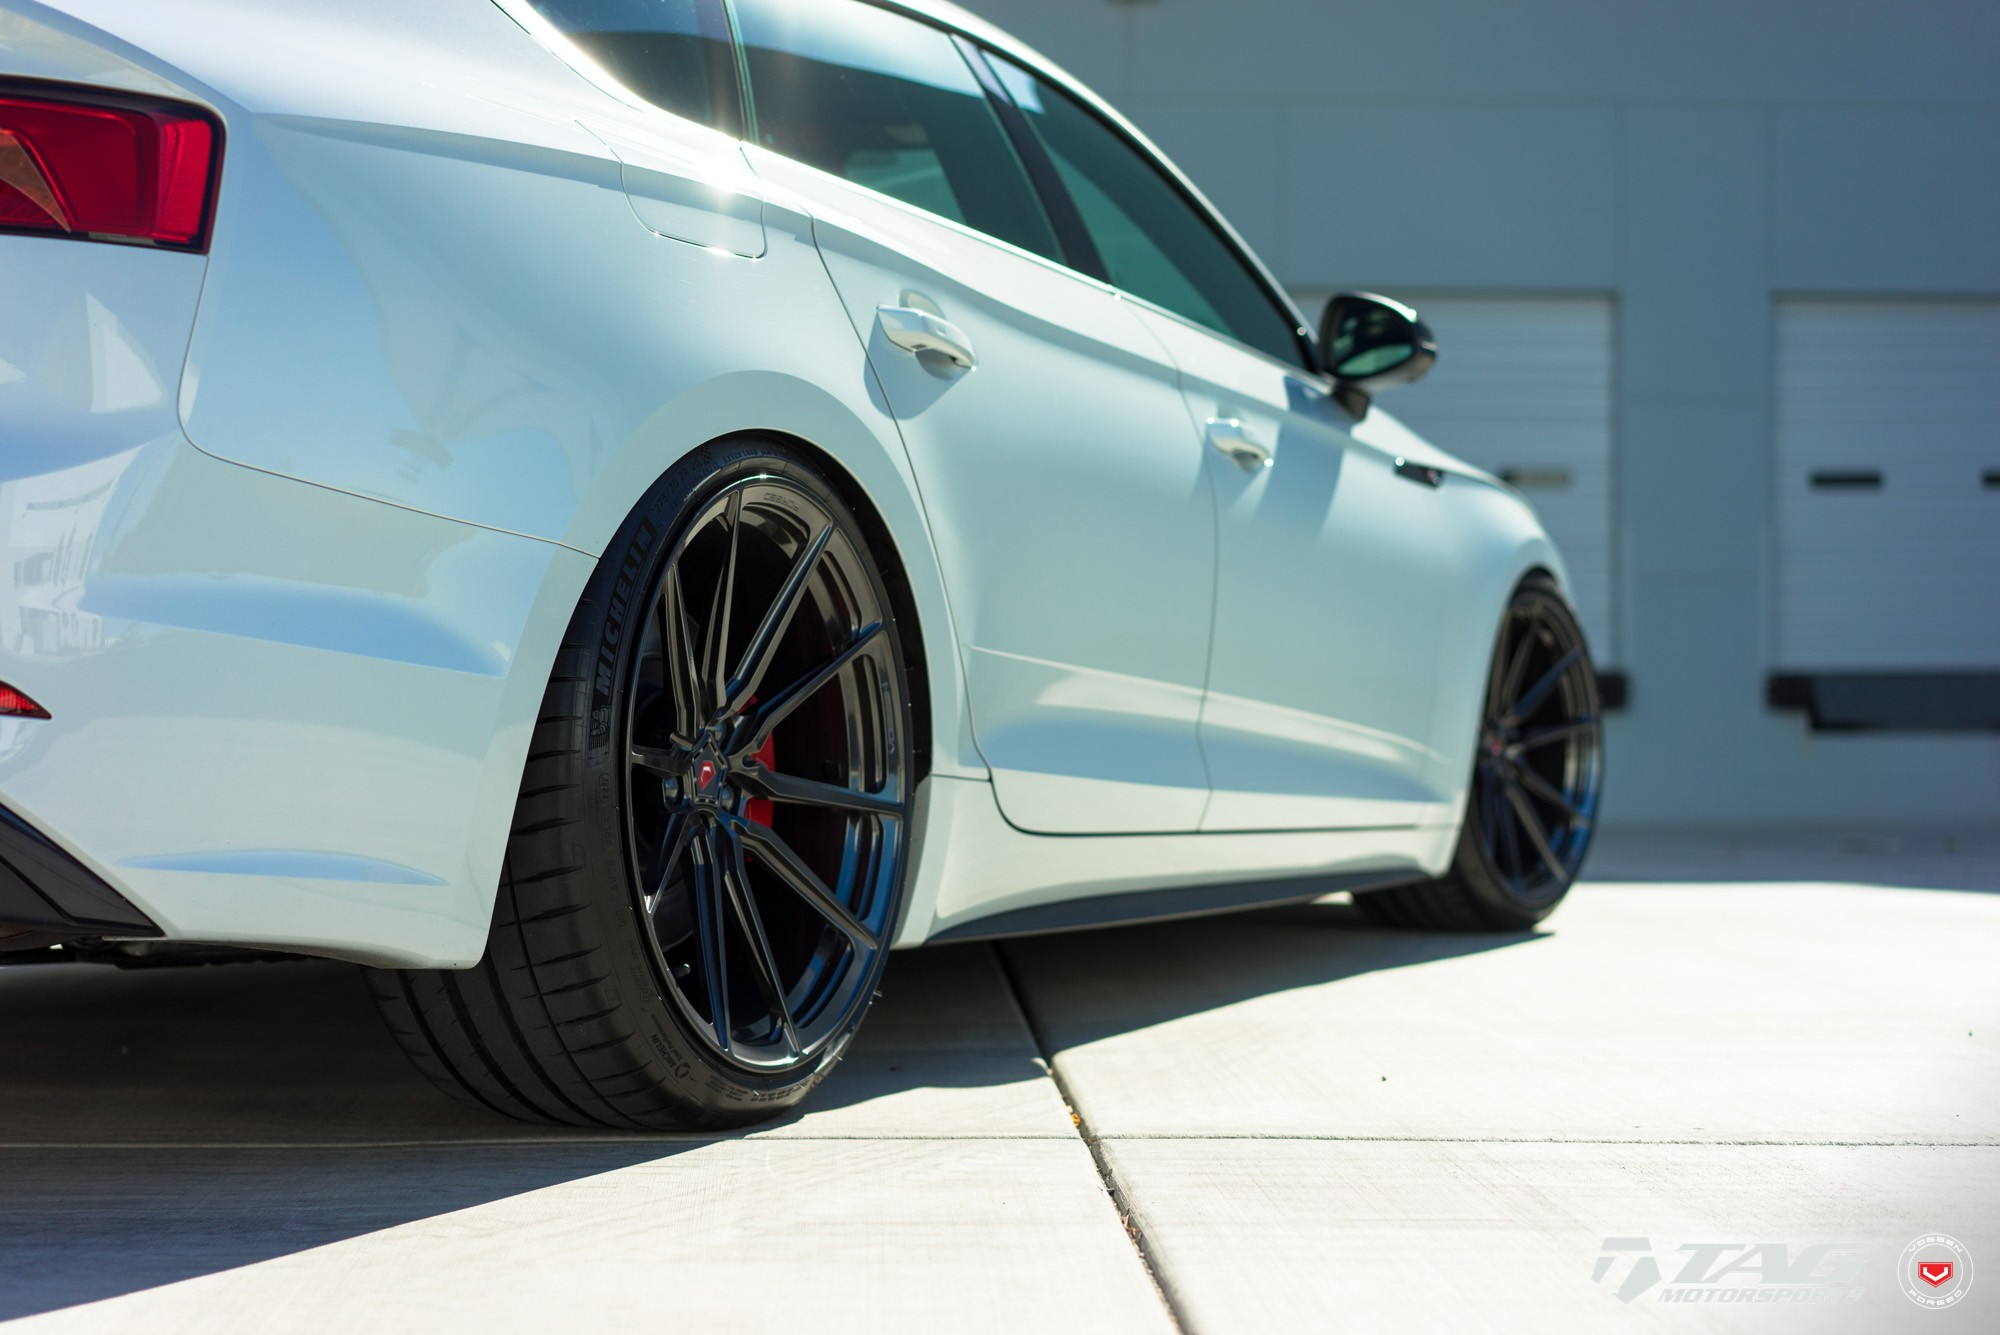 Audi S5 Sportback Looks Clean on Vossen M-X2 Wheels ...